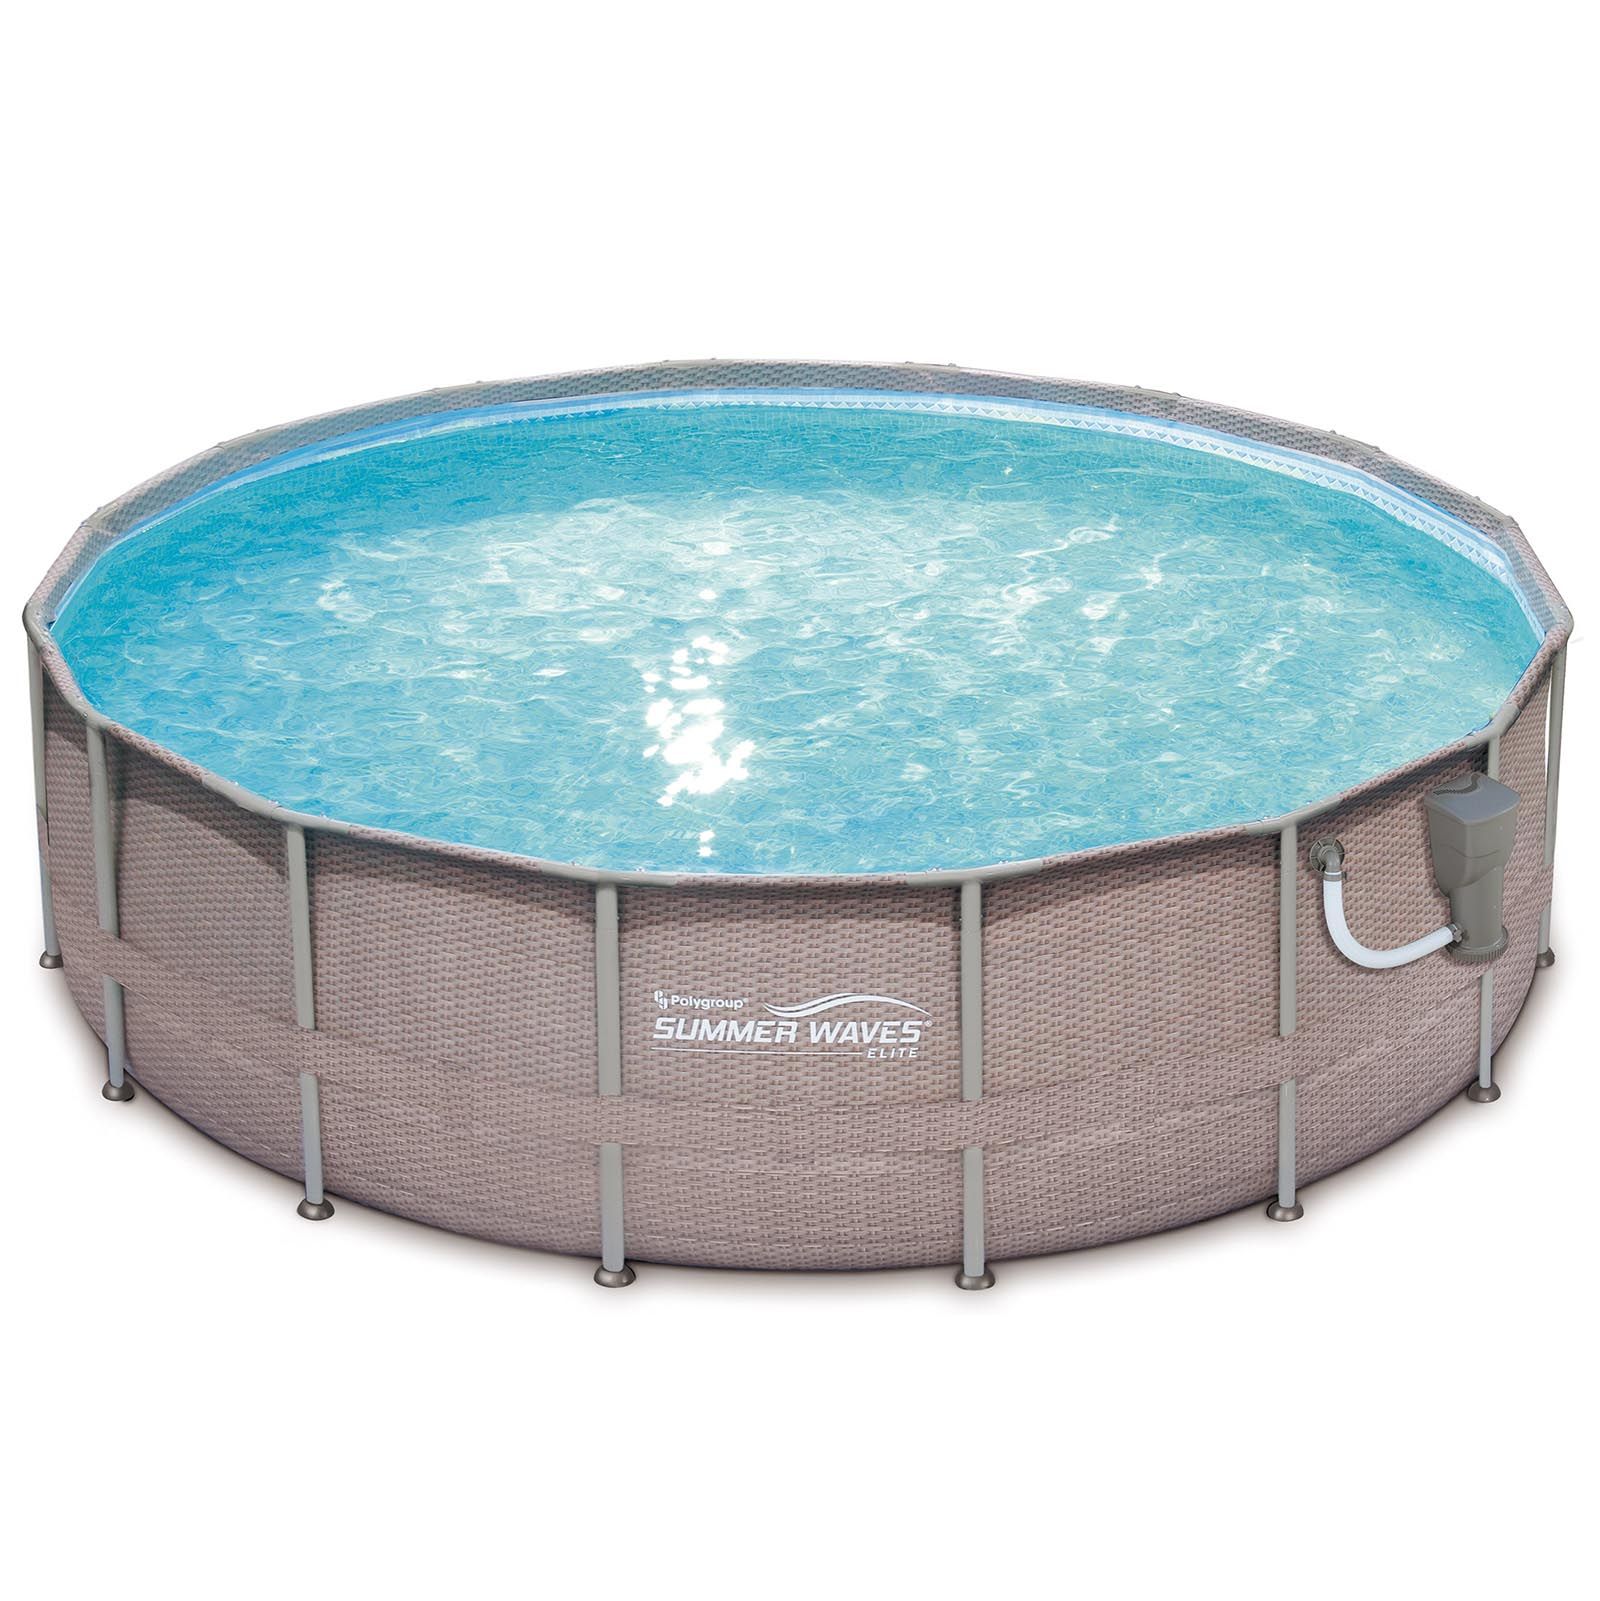 Summer waves elite wicker print 18 39 x 48 above ground for Billige pool sets